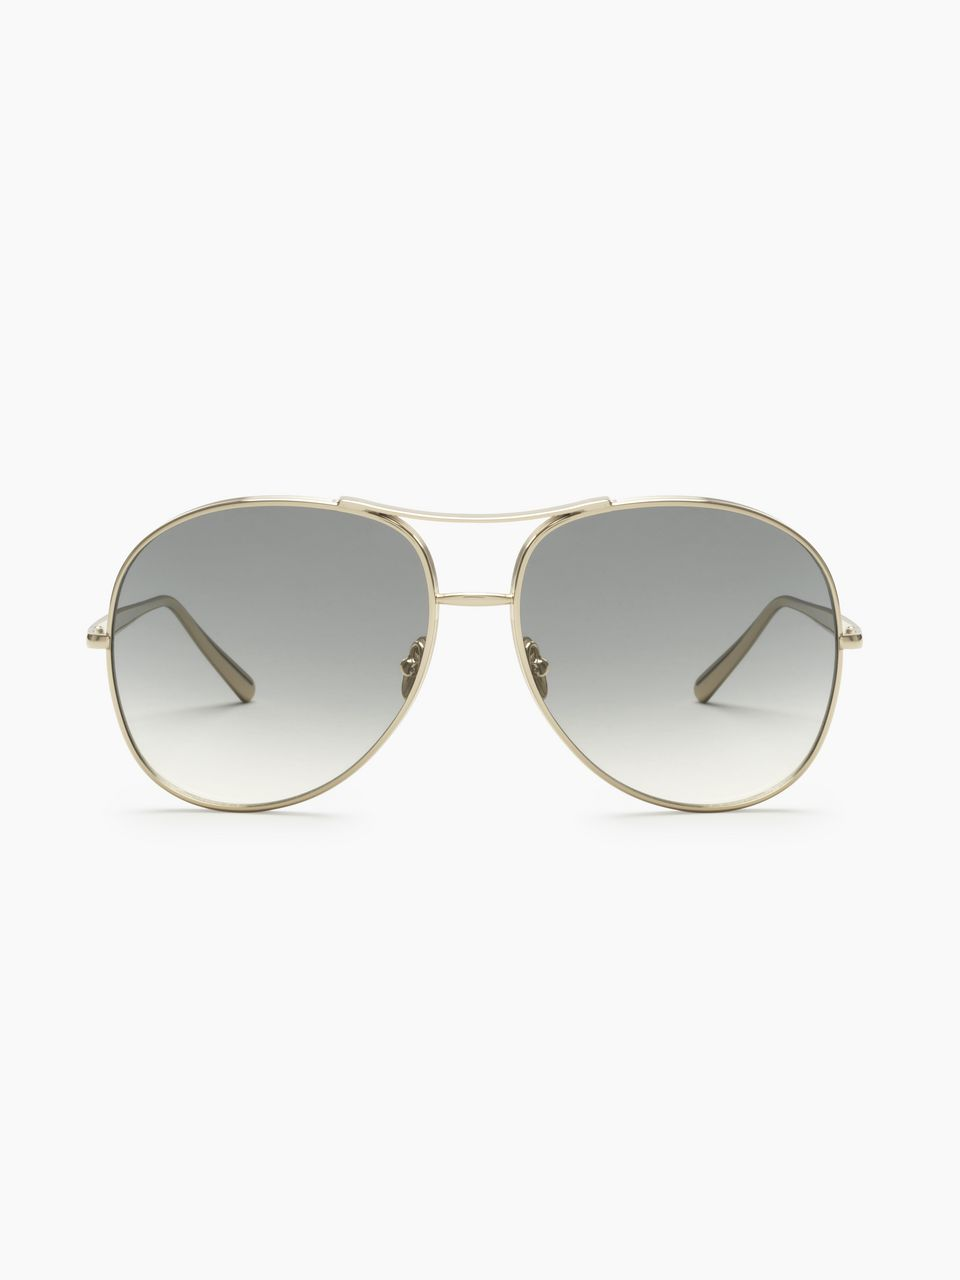 CHOLOE Nola aviator